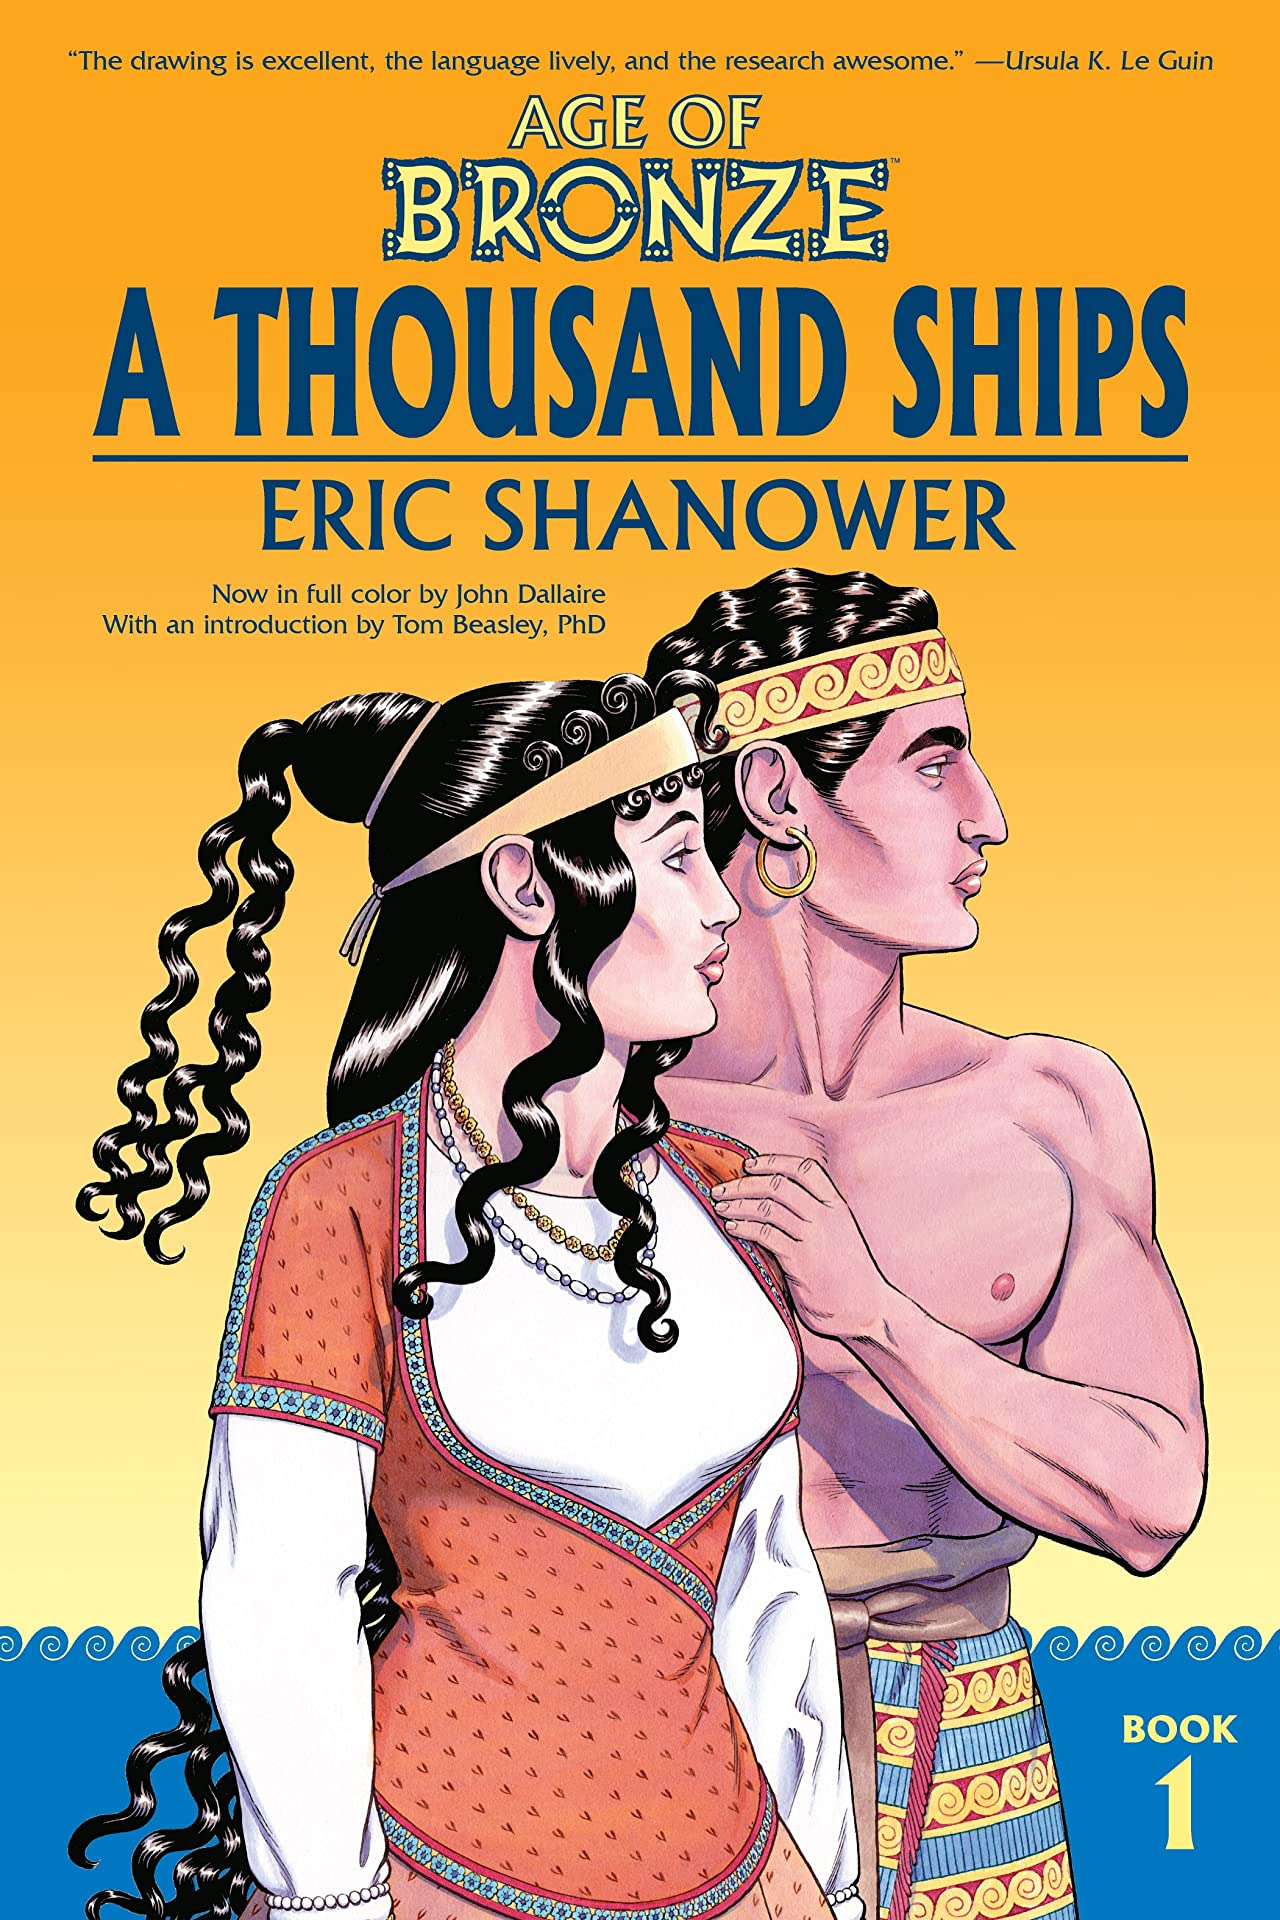 Age of Bronze Vol. 1: A Thousand Ships (2018)